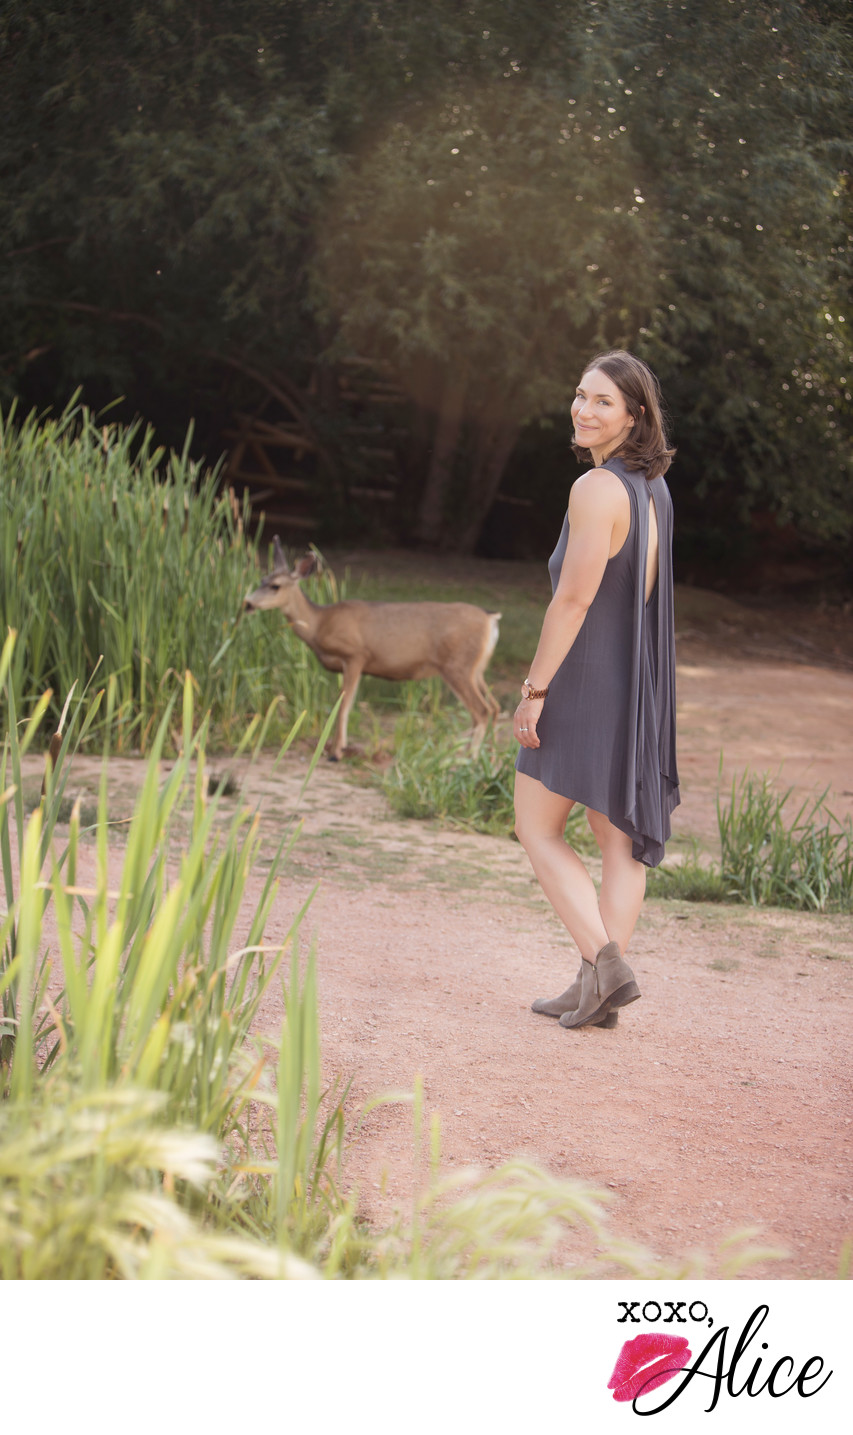 when a deer crashes your portrait session in colorado